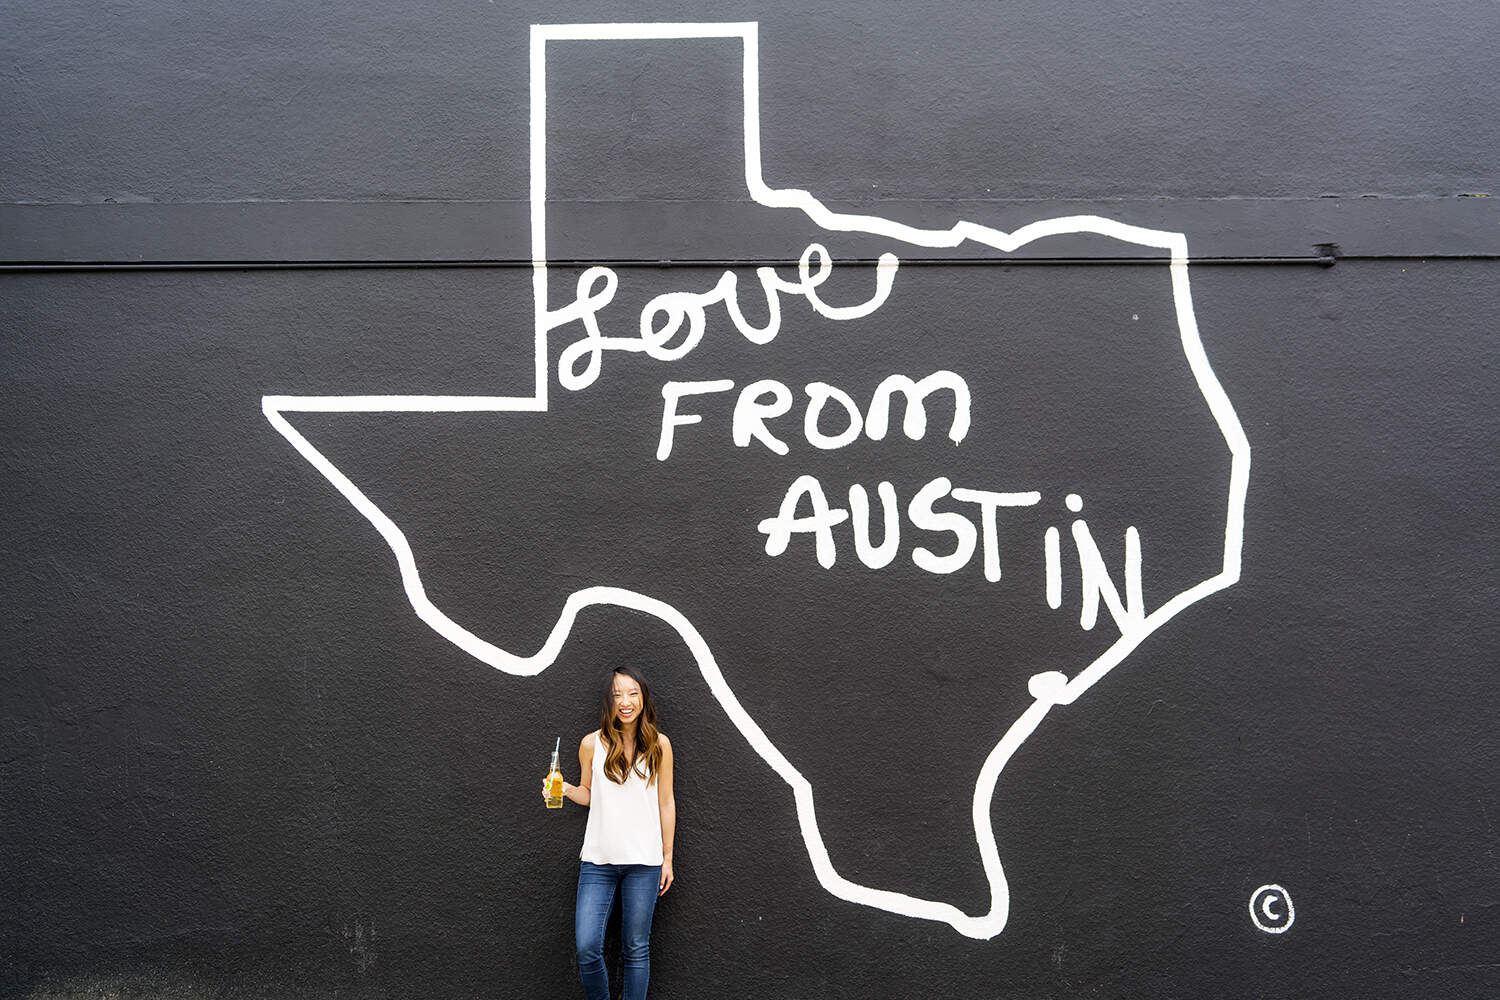 Love From Austin Mural in Austin